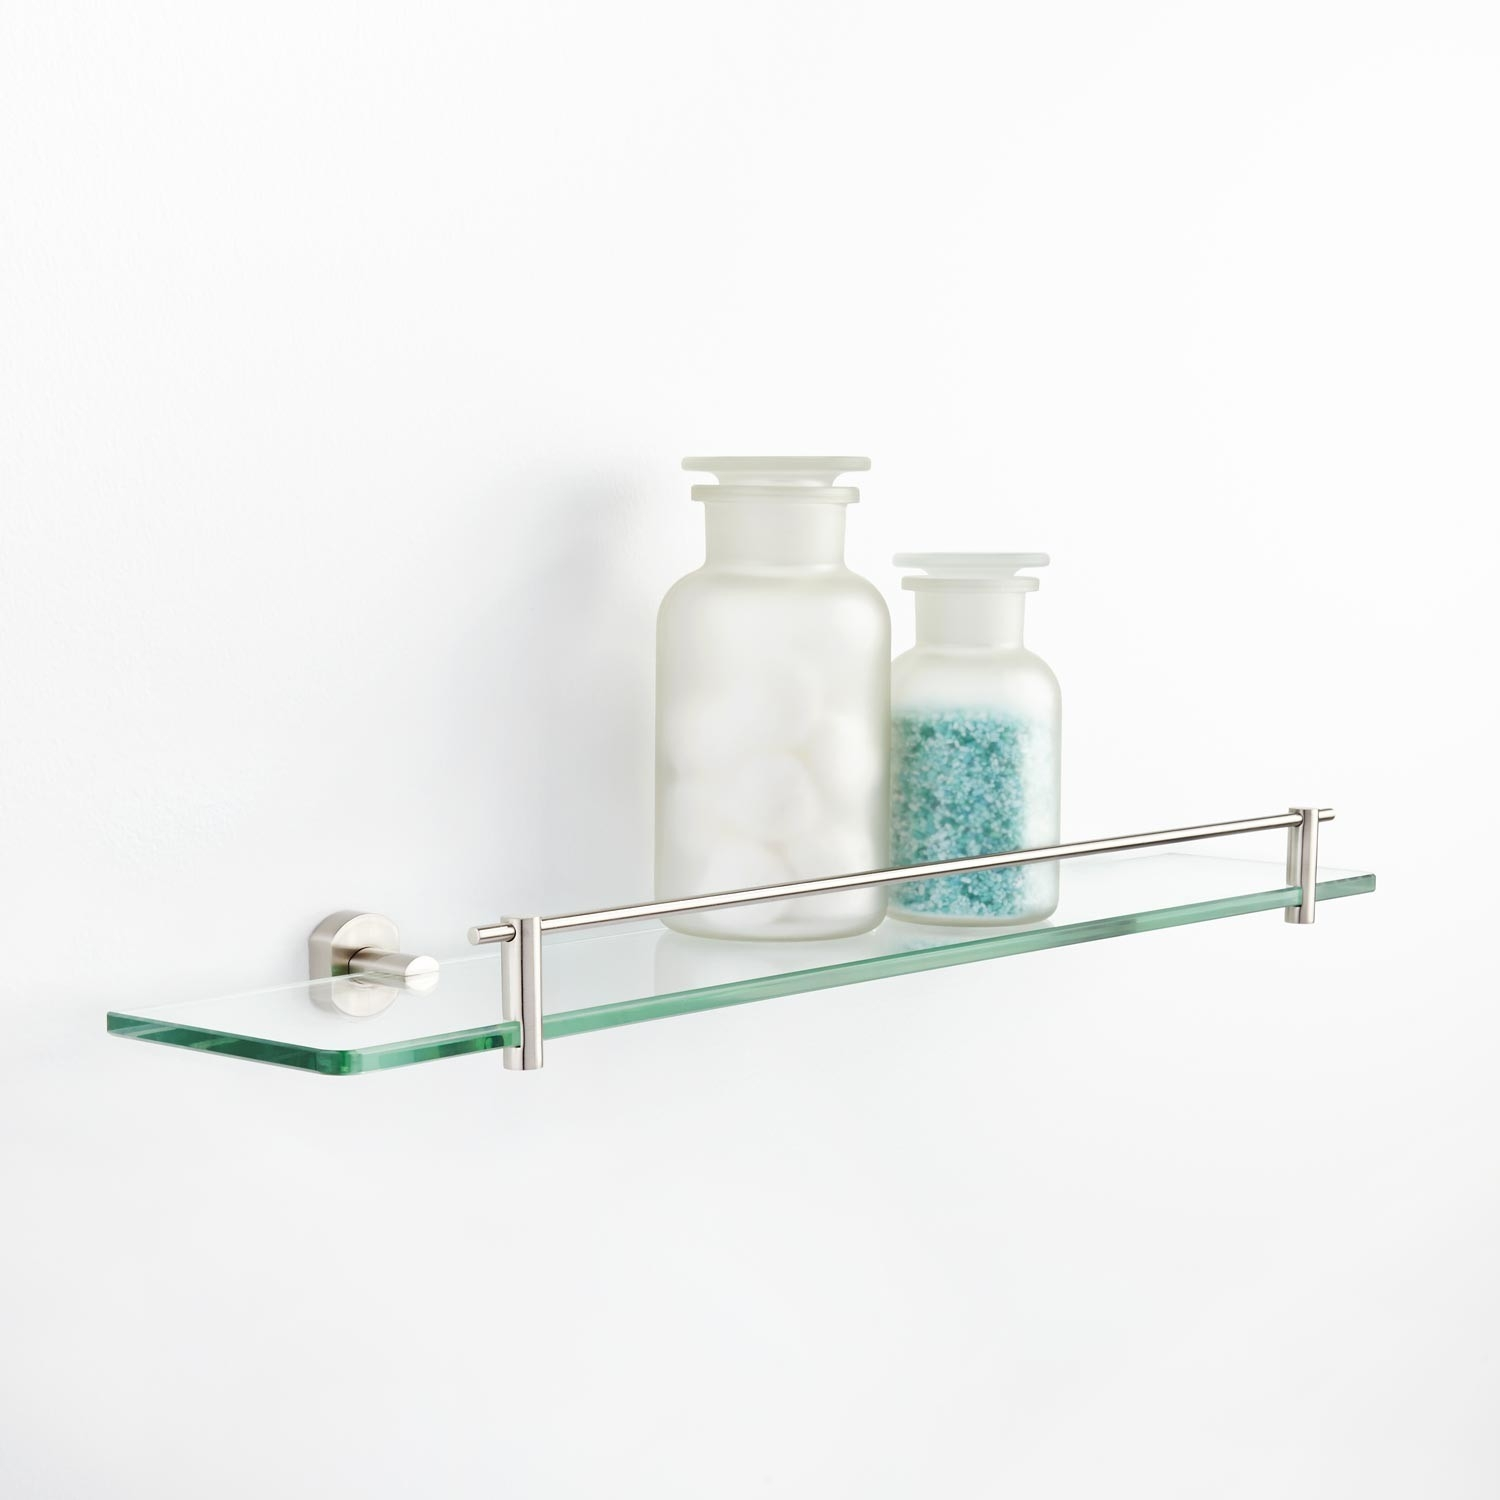 Marlton Tempered Glass Shelf Bathroom Pertaining To Glass Shelves (#10 of 12)